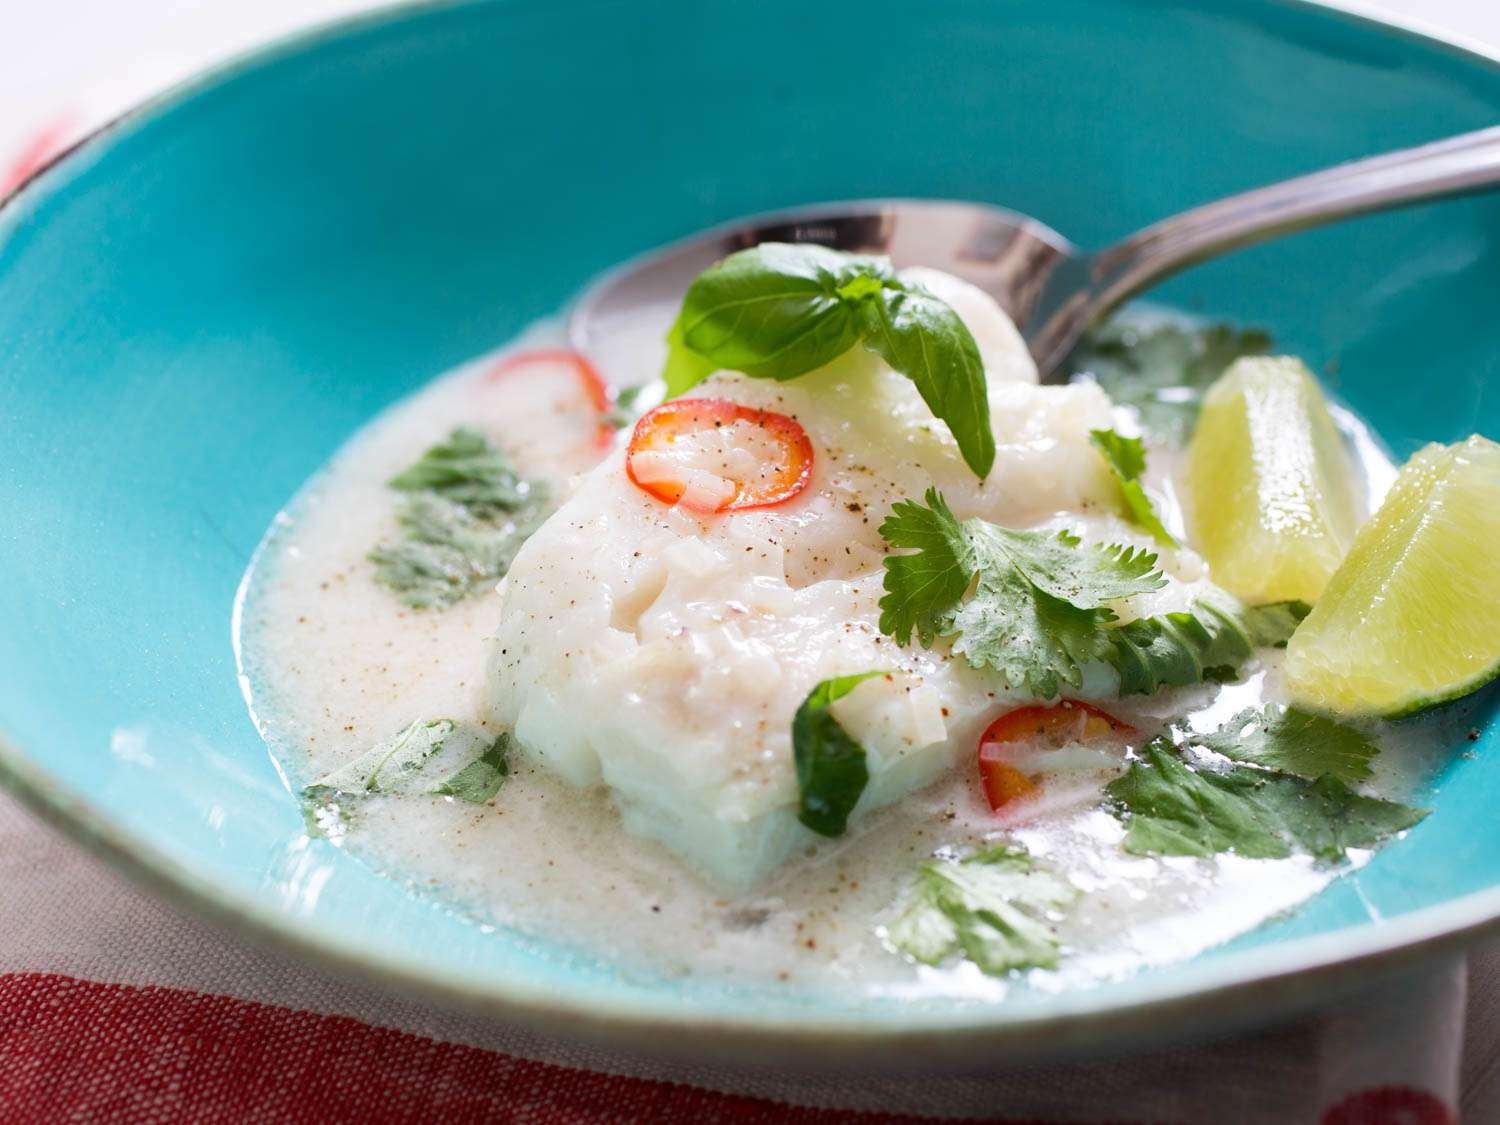 Cod à la nage in coconut milk in a bowl, with lime wedges, cilantro, and chile slices.